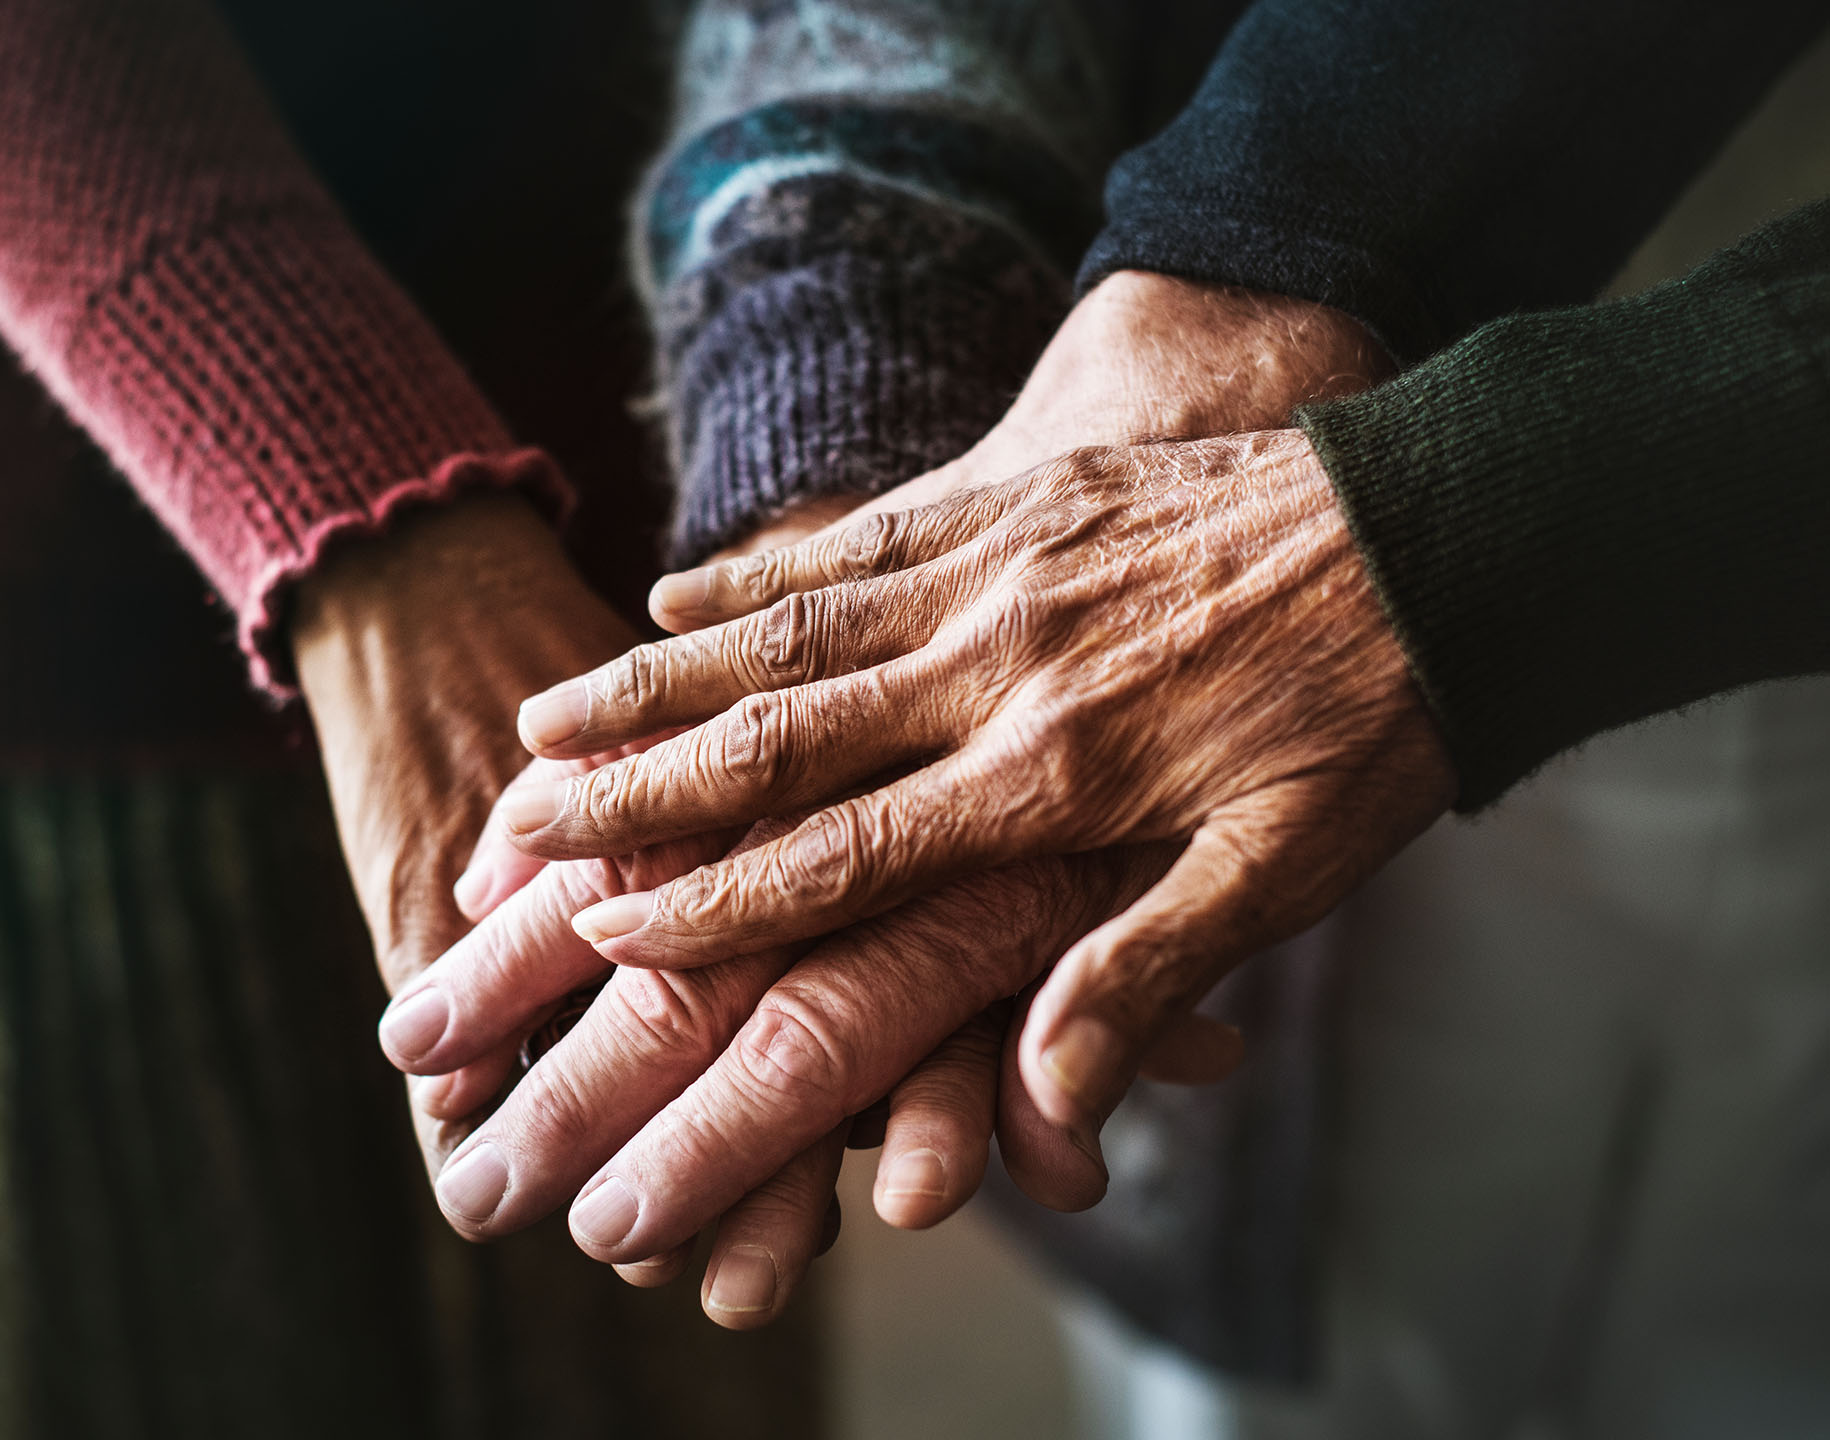 Work With The Nursing Home Abuse Legal Team That Specializes in New Jersey Cases